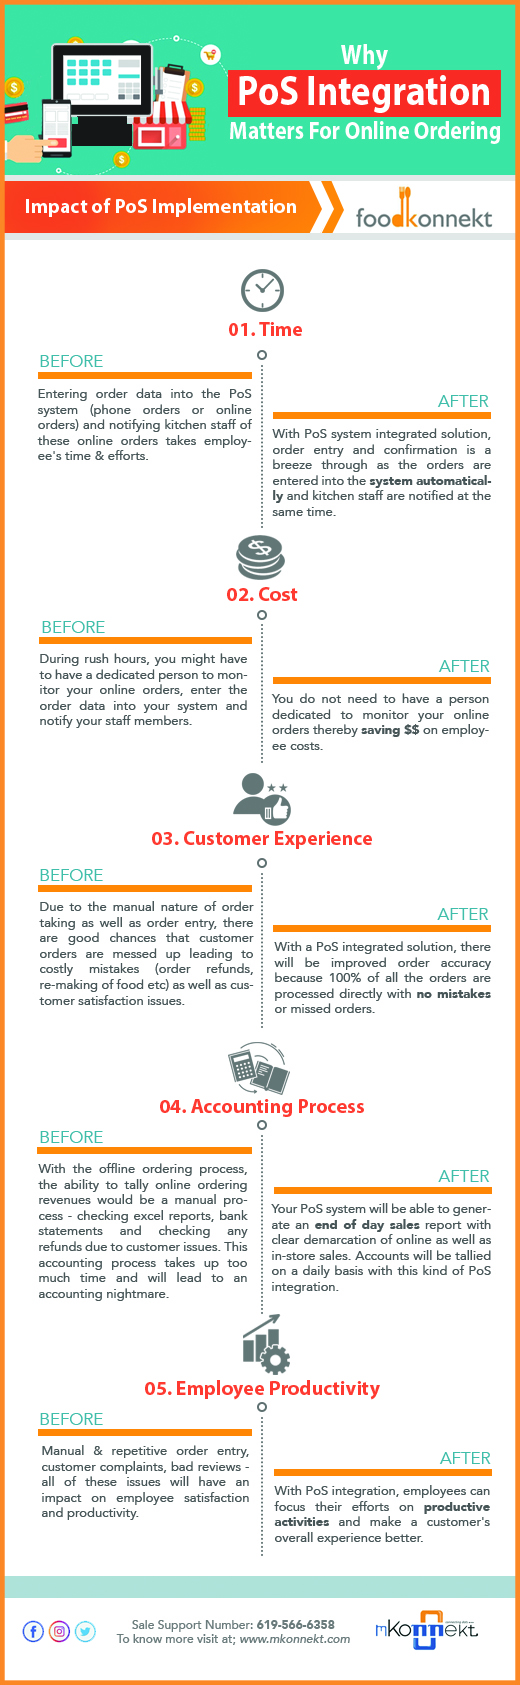 Why POS integration matters for online ordering - infographic